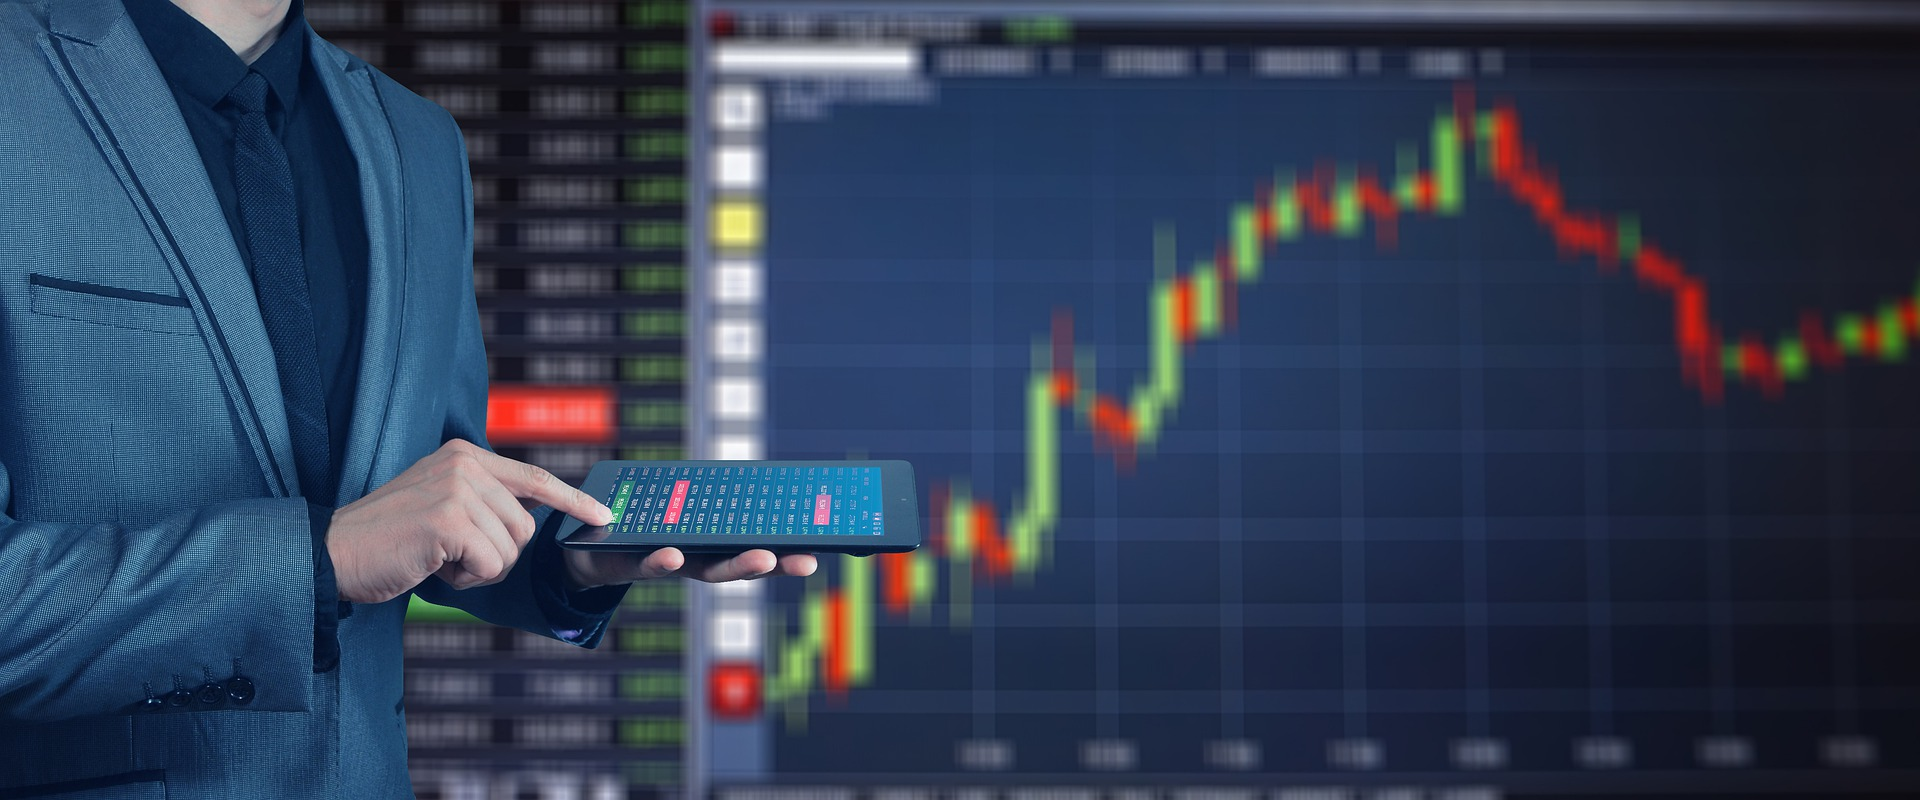 Trader using iPad to track stocks and options